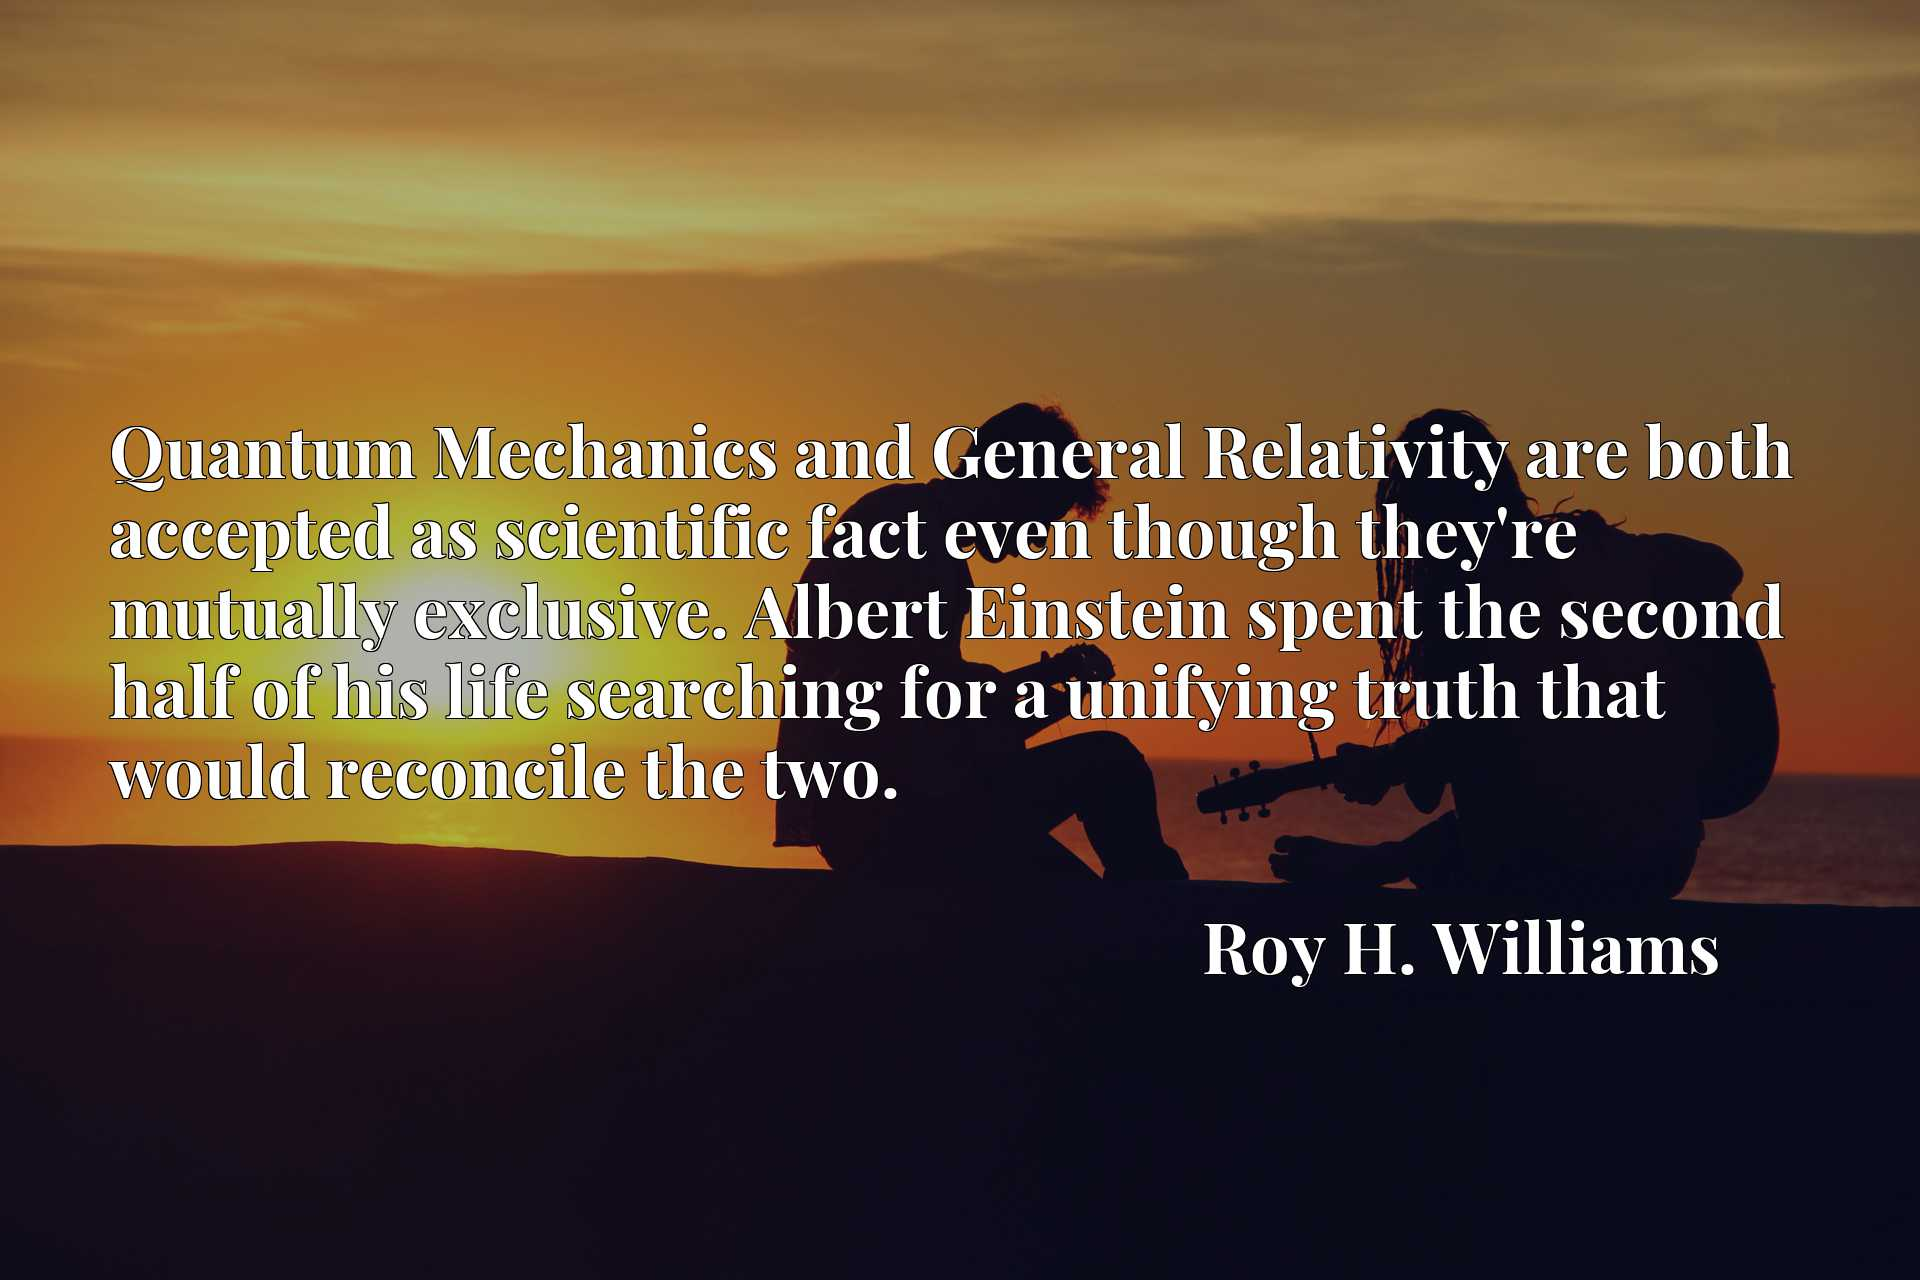 Quantum Mechanics and General Relativity are both accepted as scientific fact even though they're mutually exclusive. Albert Einstein spent the second half of his life searching for a unifying truth that would reconcile the two.